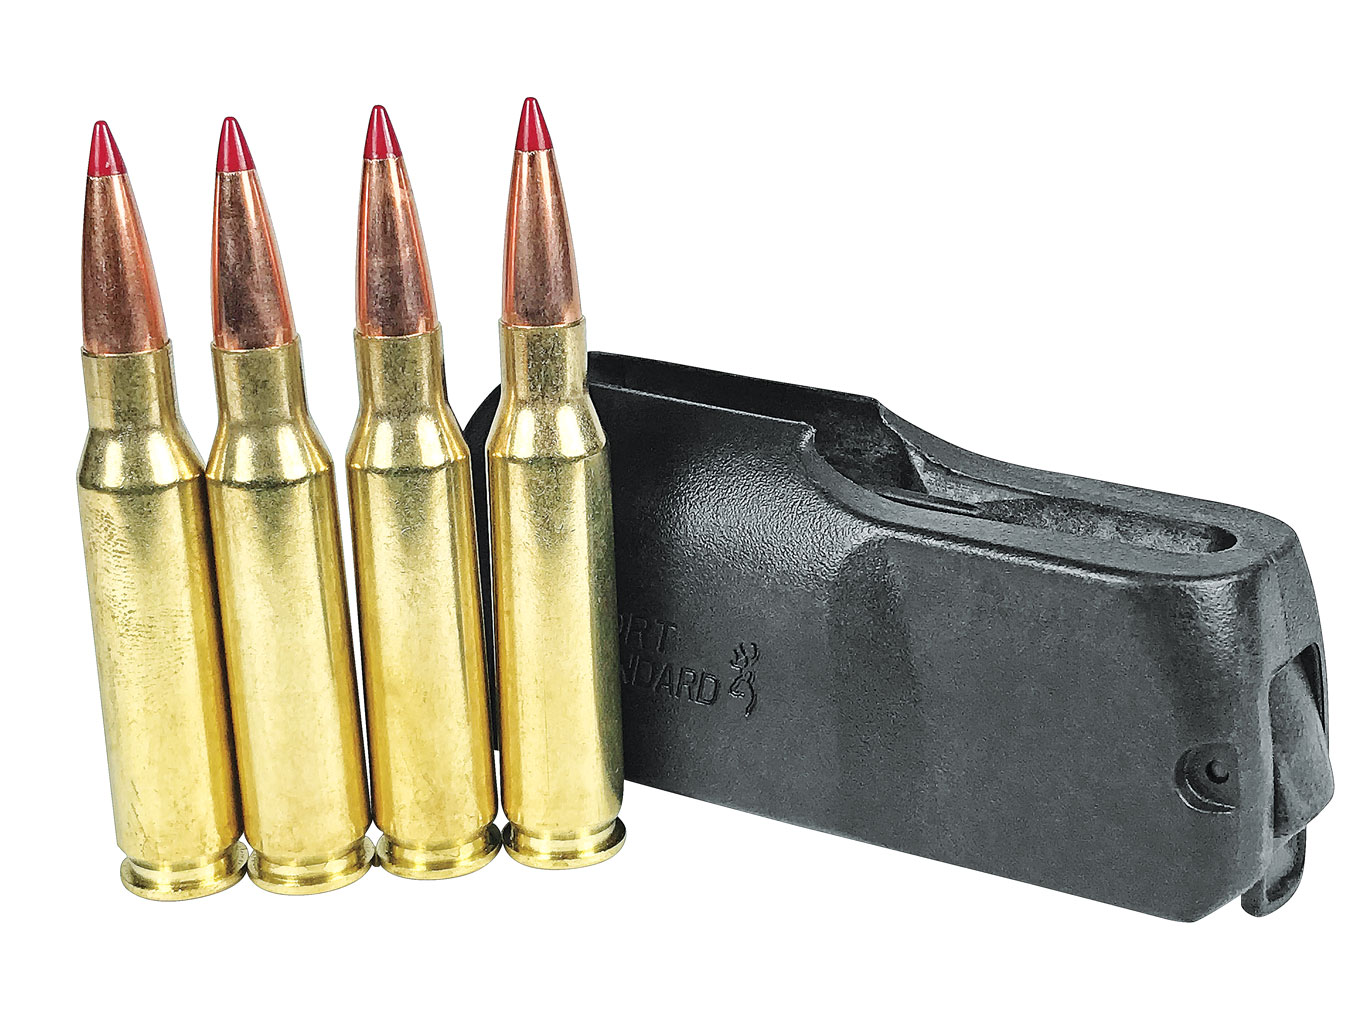 The Micro Composite is chambered for five capable short-action cartridges, and it feeds from a detachable polymer magazine.